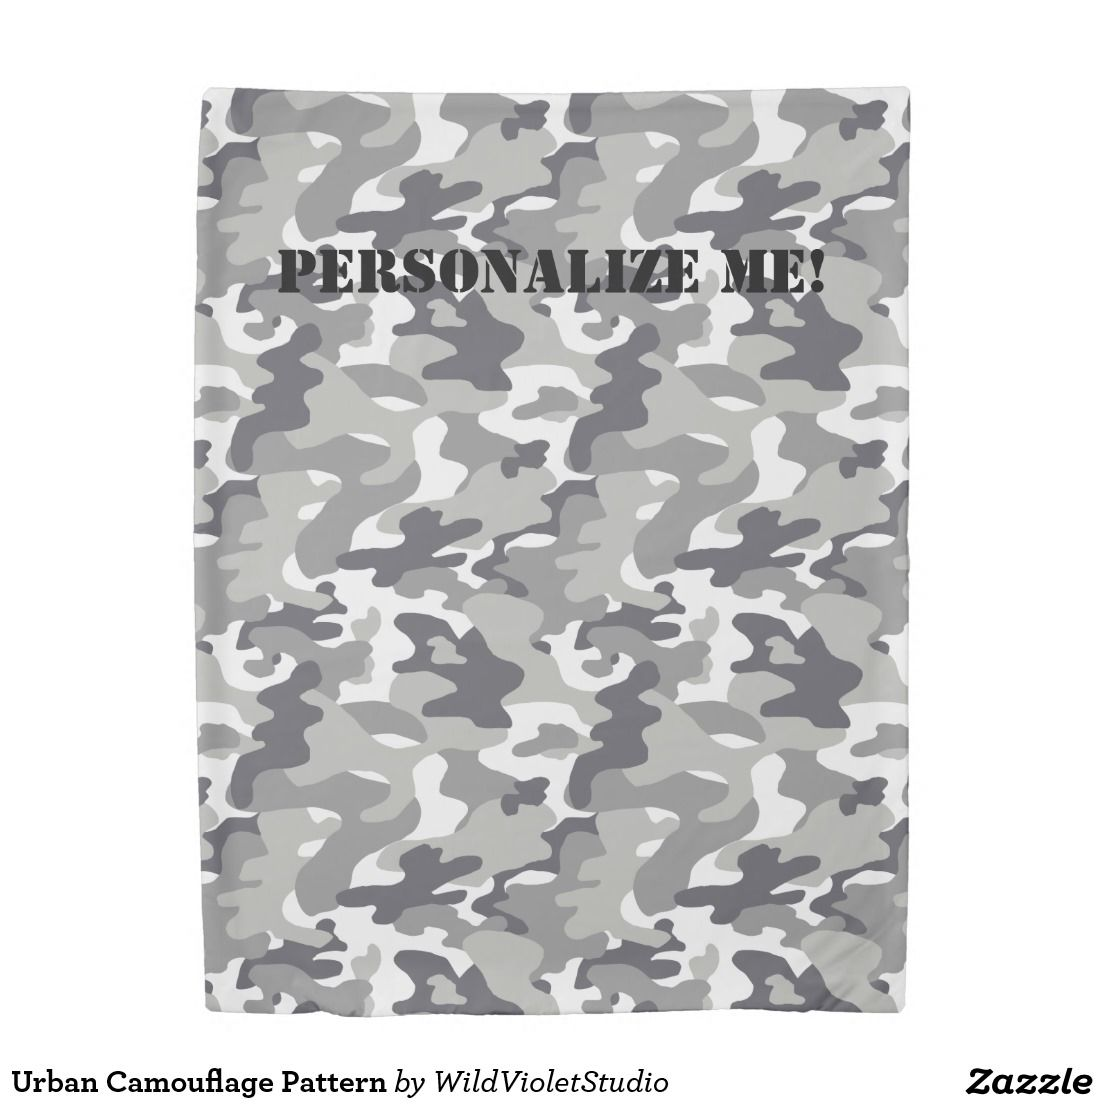 Urban Camouflage Pattern Duvet Cover In Three Sizes With ...